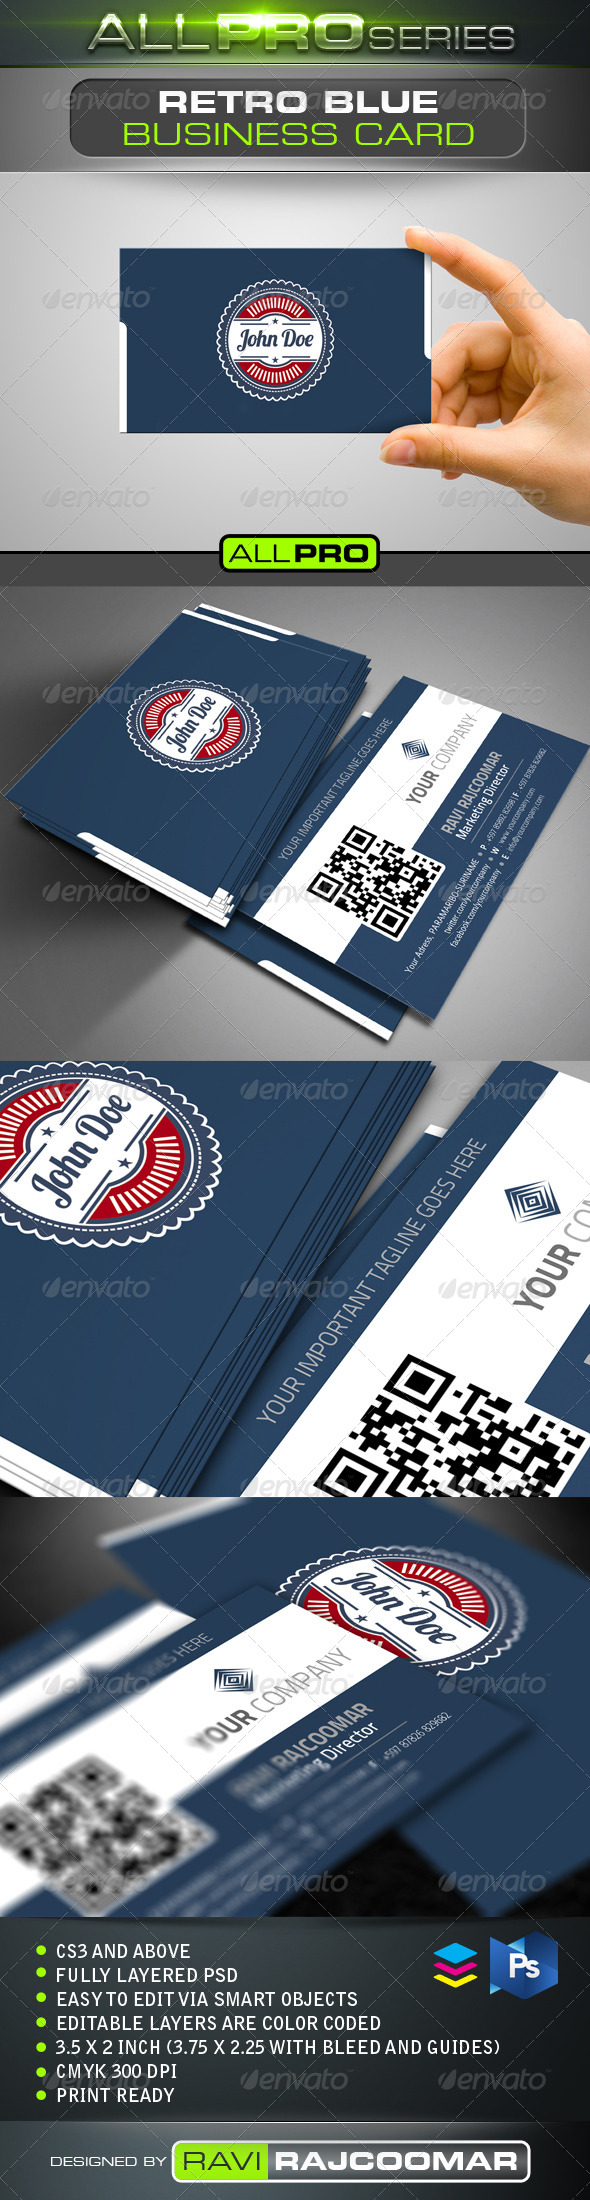 GraphicRiver Retro Blue Business Card 4148559